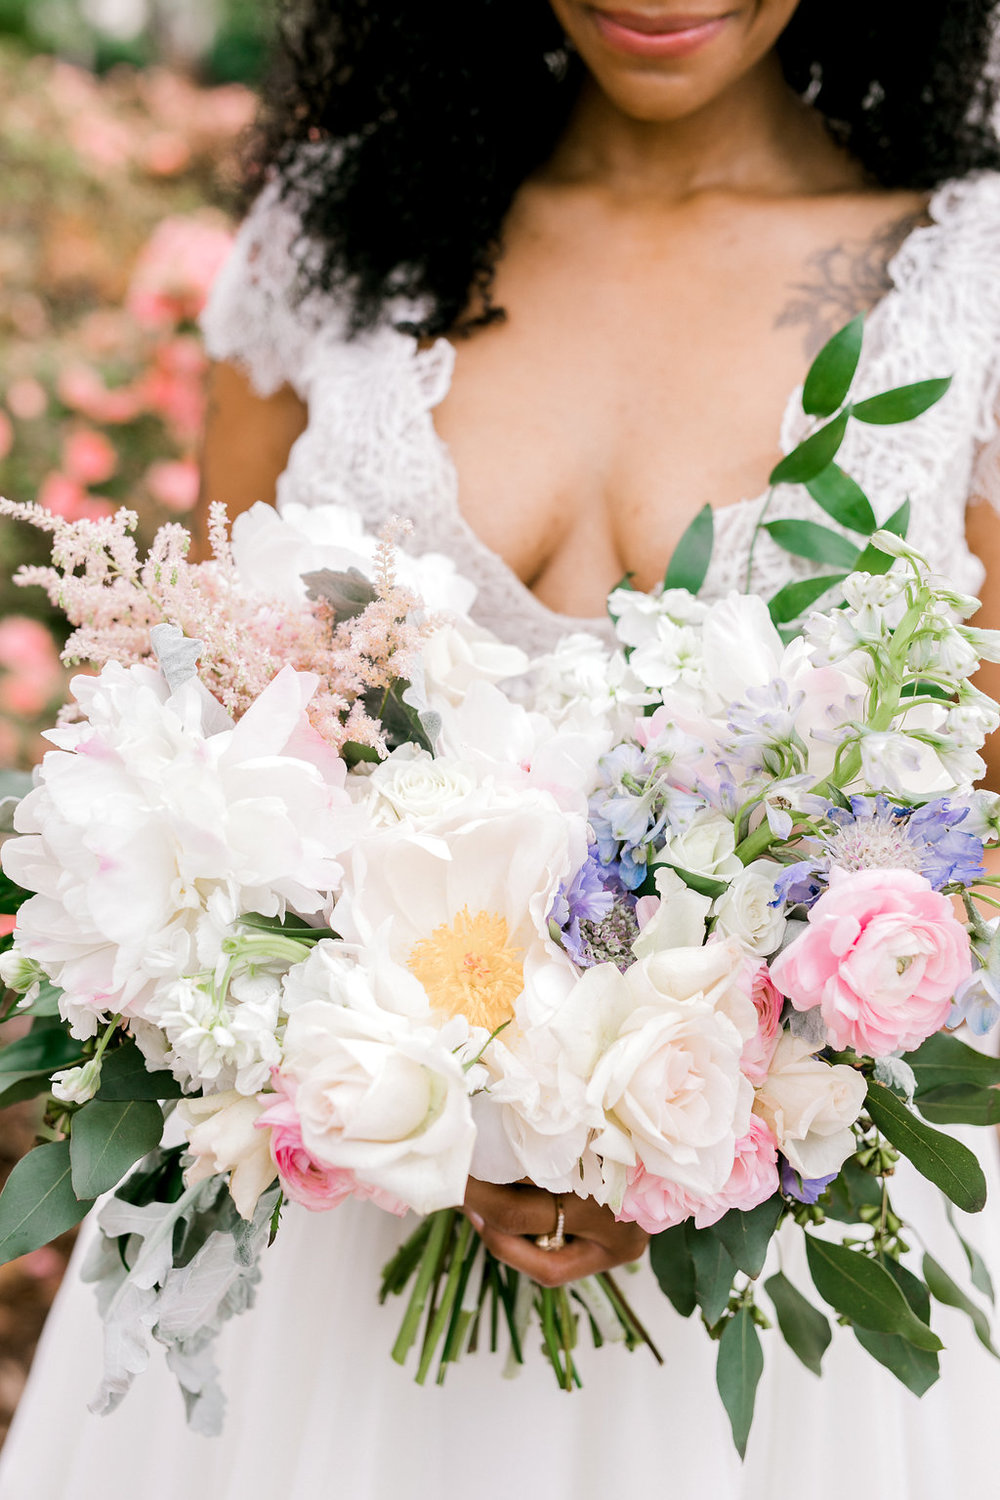 savannah-bridal-shop-i-and-b-florals-sonya-and-josh-colorful-rustic-boho-wedding-florals-at-soho-south-cafe-savannah-ga-wedding-danielle-george-photography-12.JPG